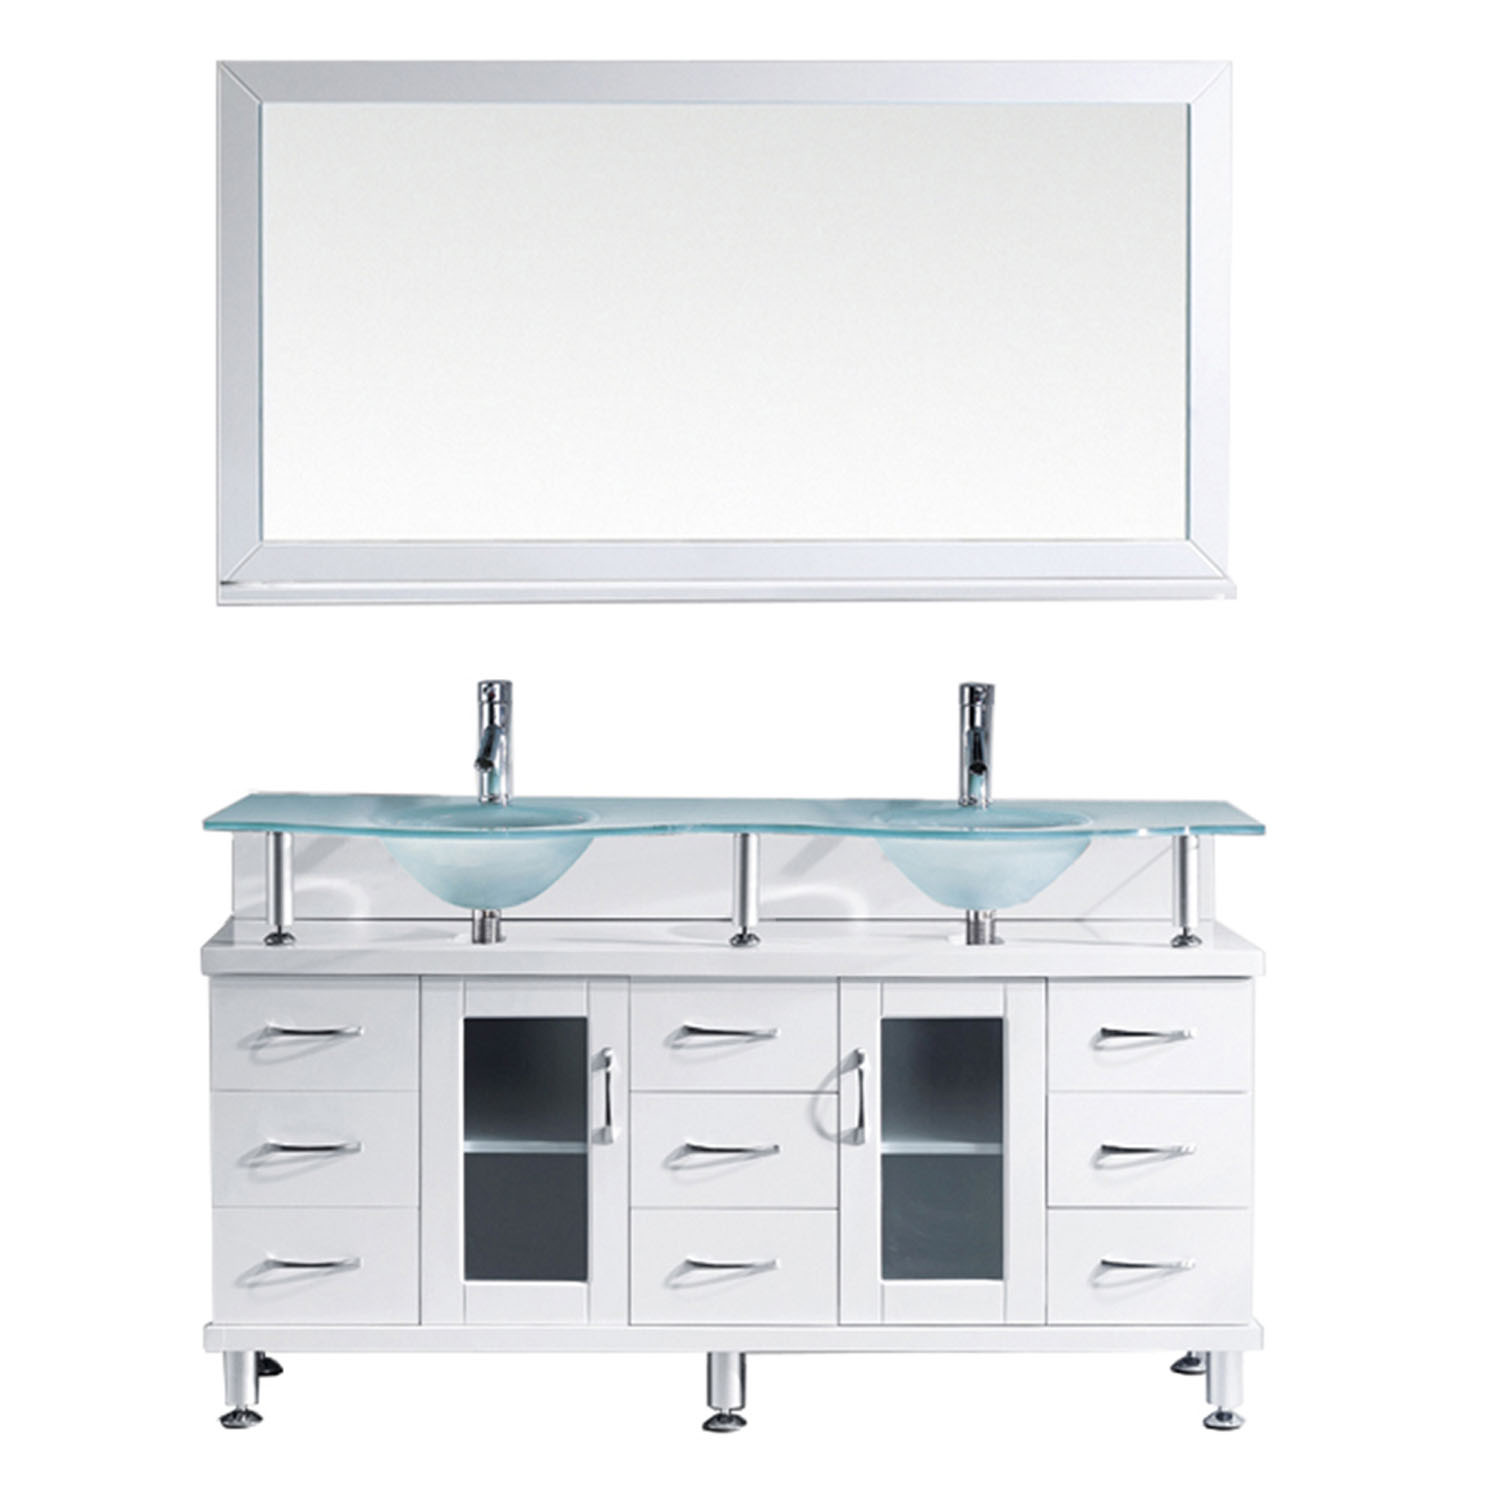 Virtu MD-61-FG-WH-001 Vincente Rocco 59 Inch Double Bathroom Vanity Set In White